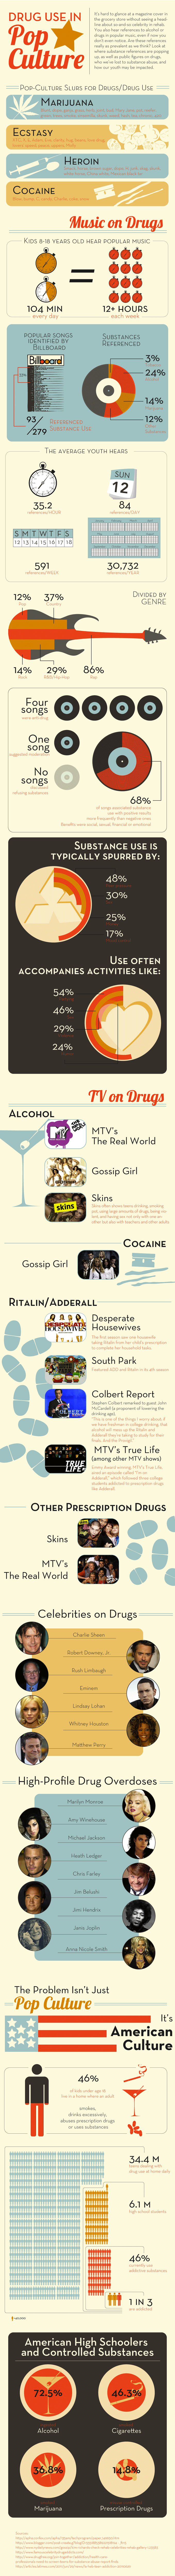 Drug Use in Pop Culture Infographic